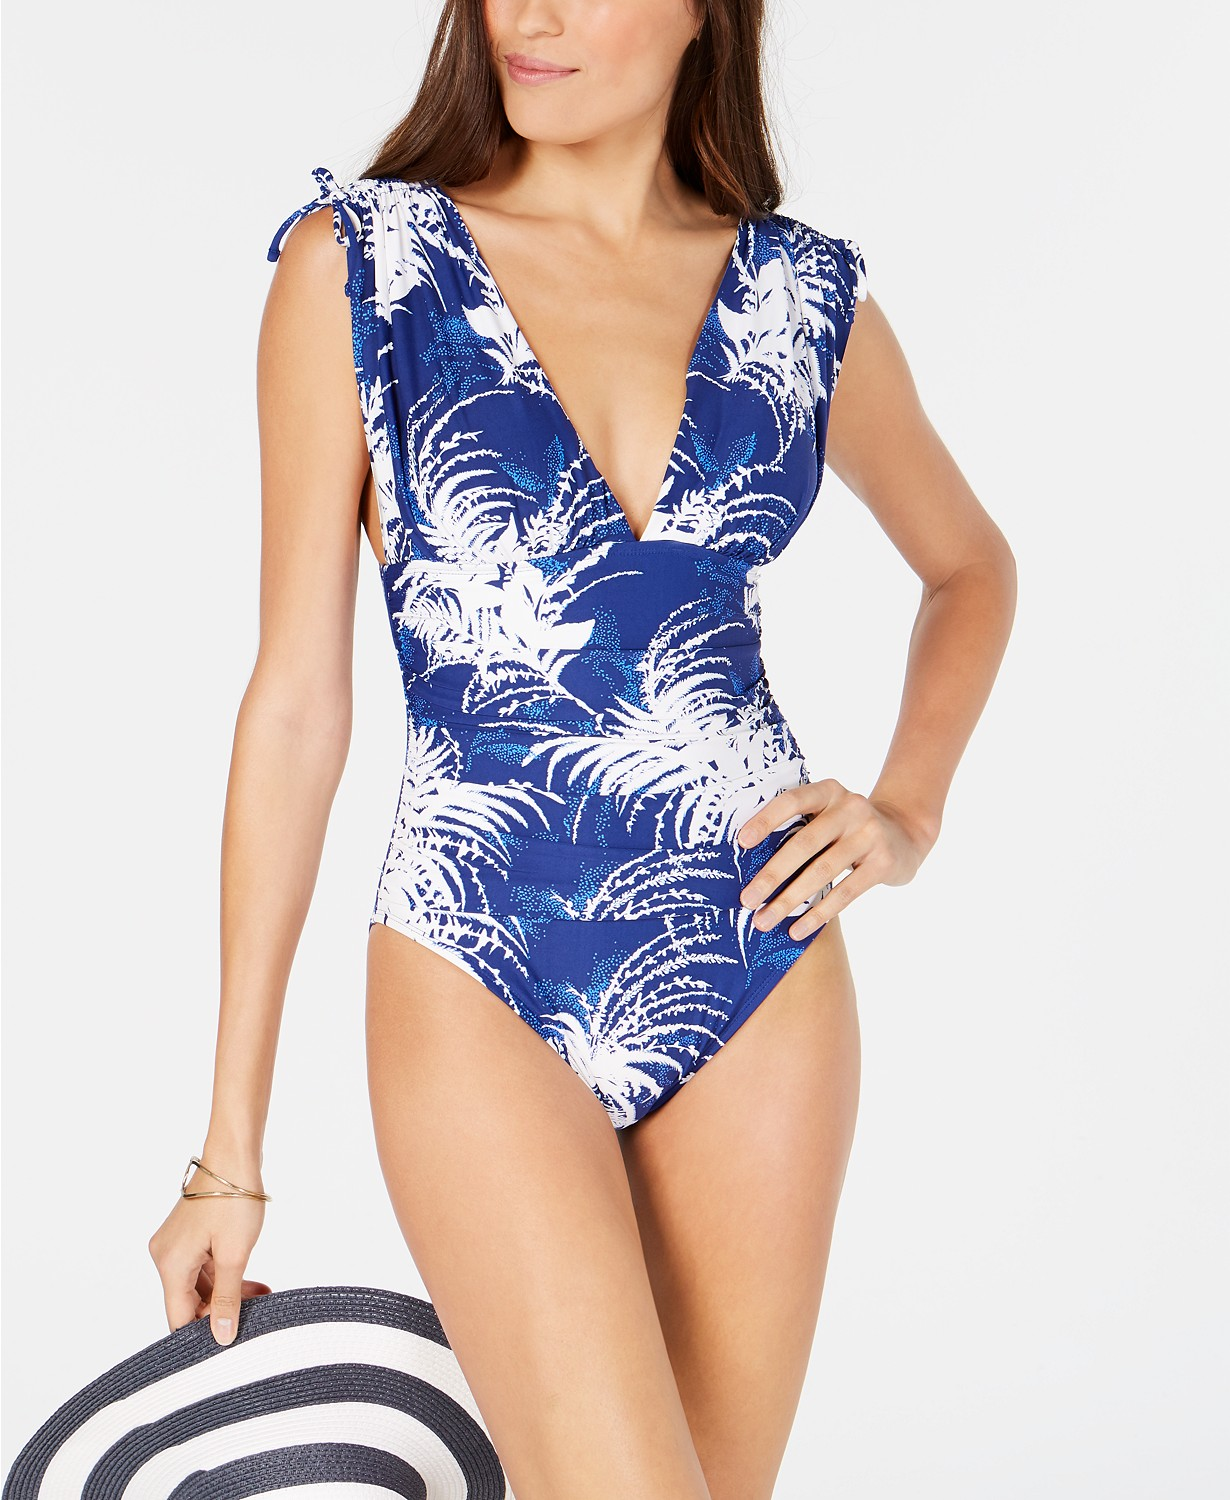 Best Swimsuit for Glamour Girls: La Blanca Go Bold Or Go Home One-Piece Swimsuit